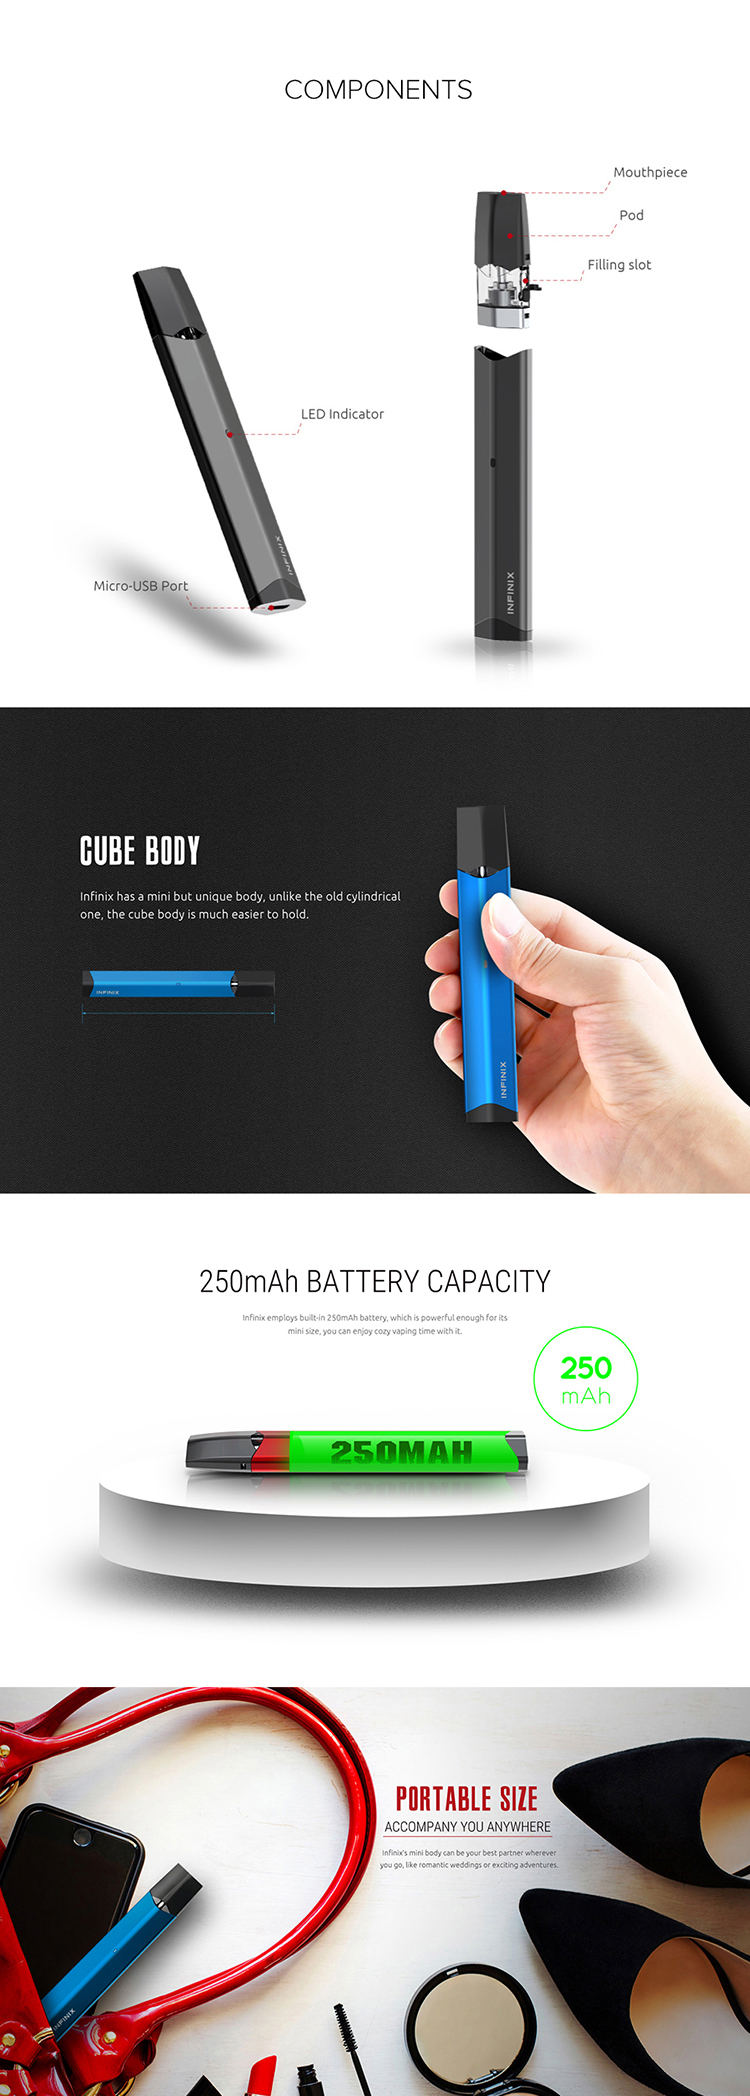 SMOK Infinix Kit Main Feature